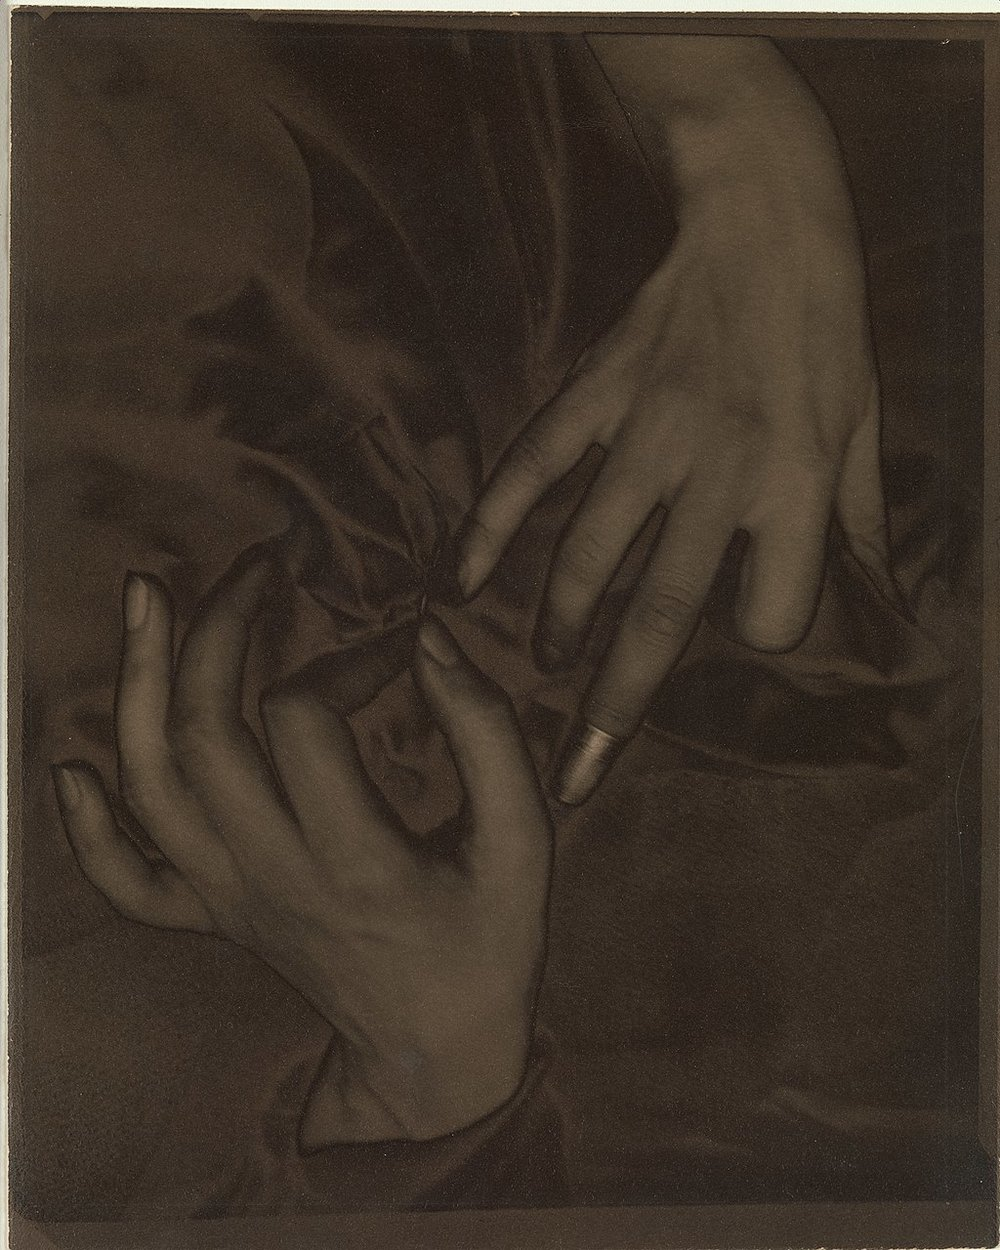 1024px-Georgia_O'Keeffe_–_Hands_and_Thimble_MET_DP235214-CC0.jpg